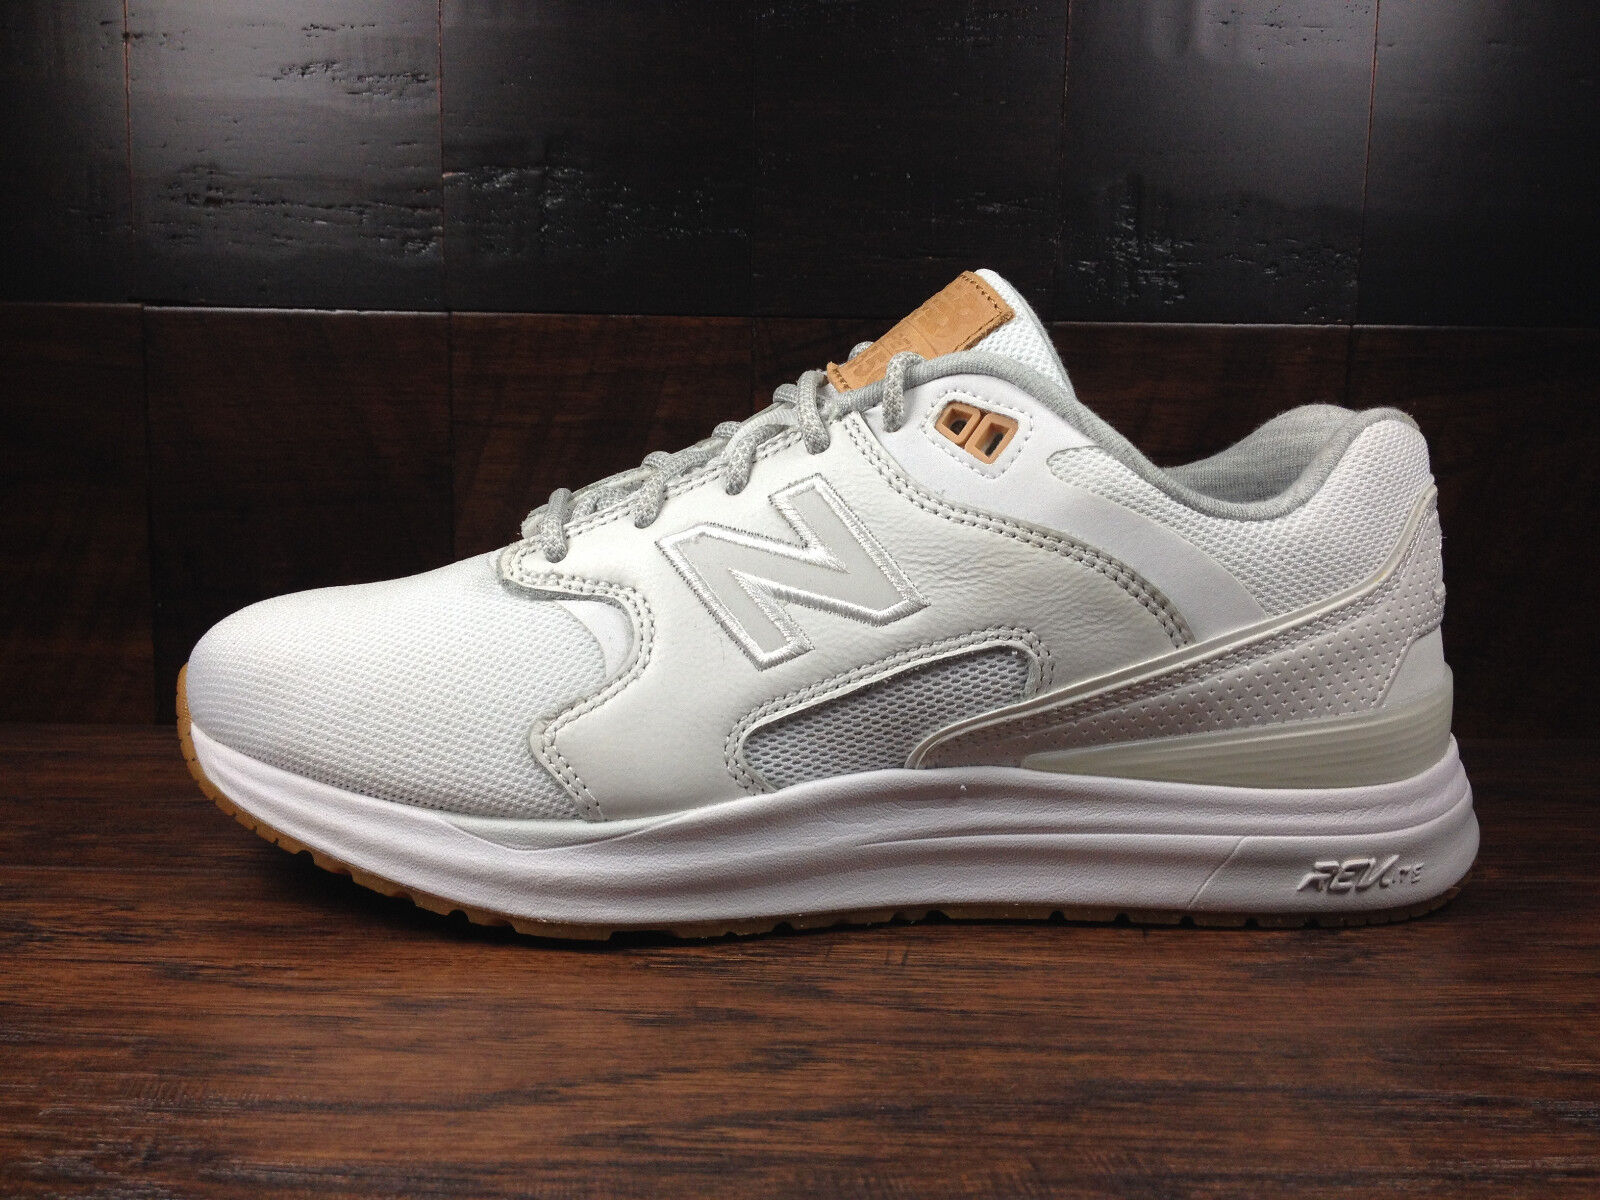 New Balance ML1550AD  Lifestyle PACK  (White   Tan) 1550 Mens Size 7 - 13